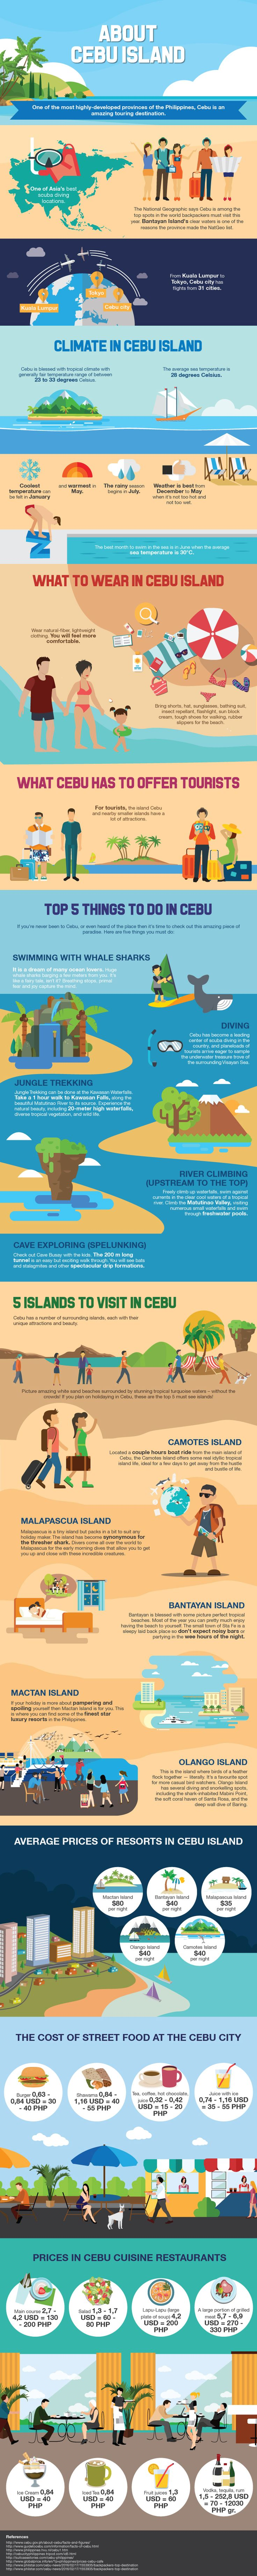 Reasons To Visit Cebu Island